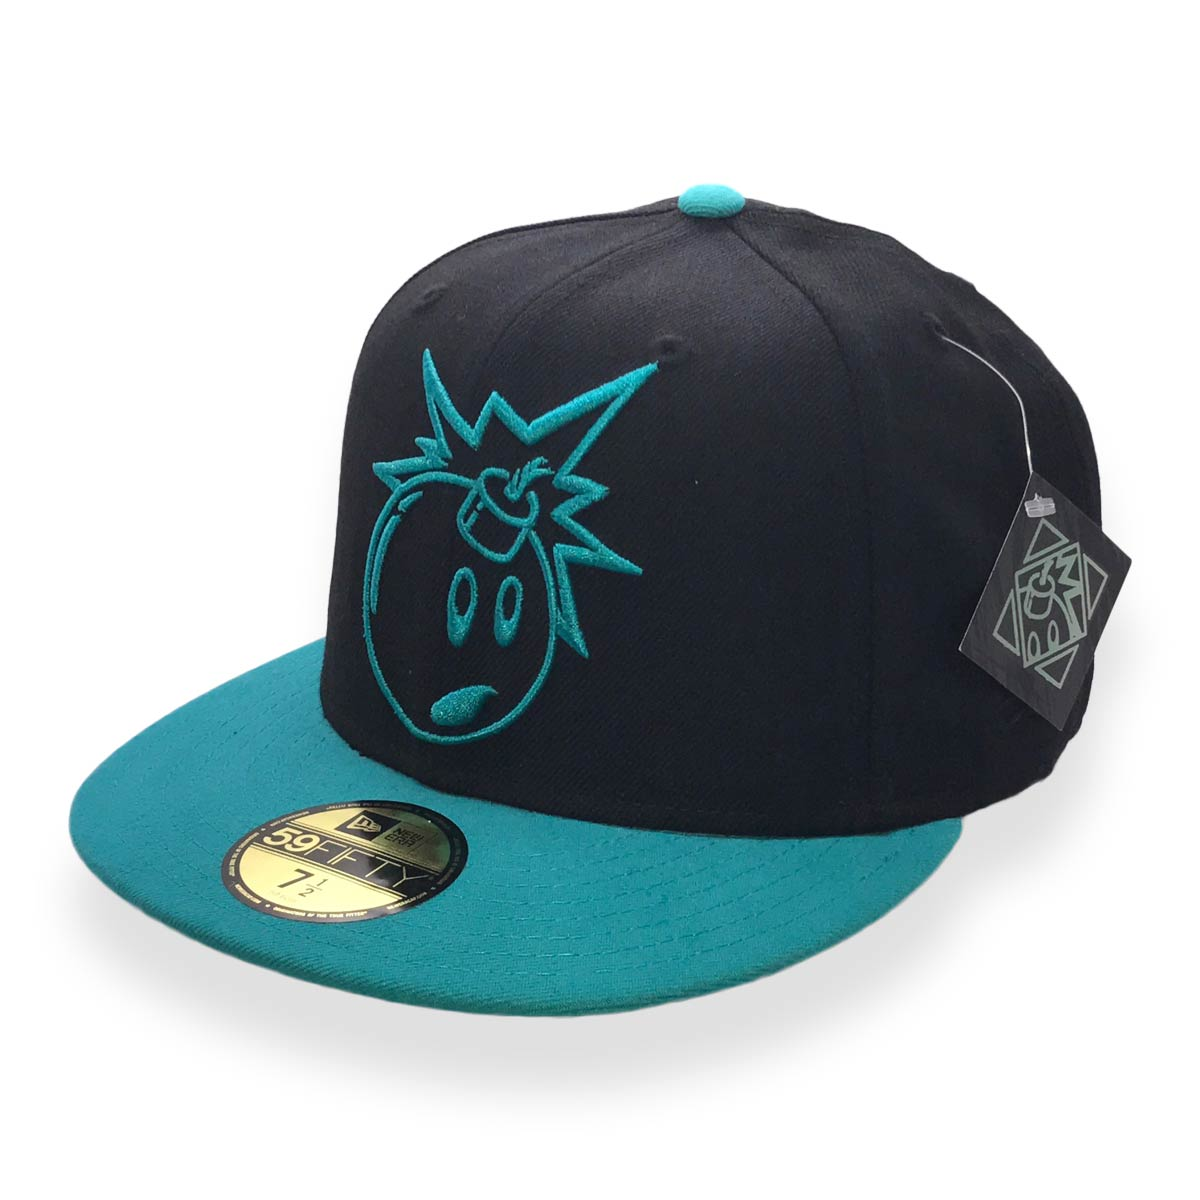 06d5c9ca9c7 Details about NEW ERA X THE HUNDREDS ADAM BOMB FITTED MENS CAP